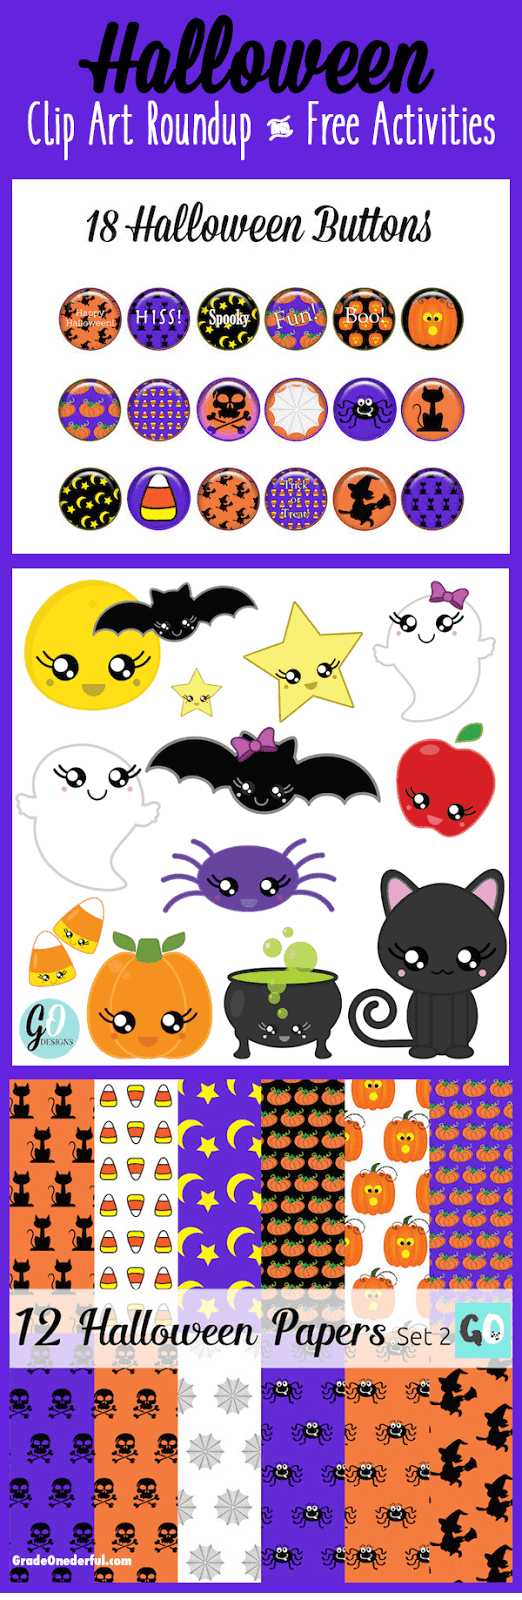 This is a roundup of my Halloween clipart and Halloween digital papers. I also have links to some great FREE games. Enjoy!